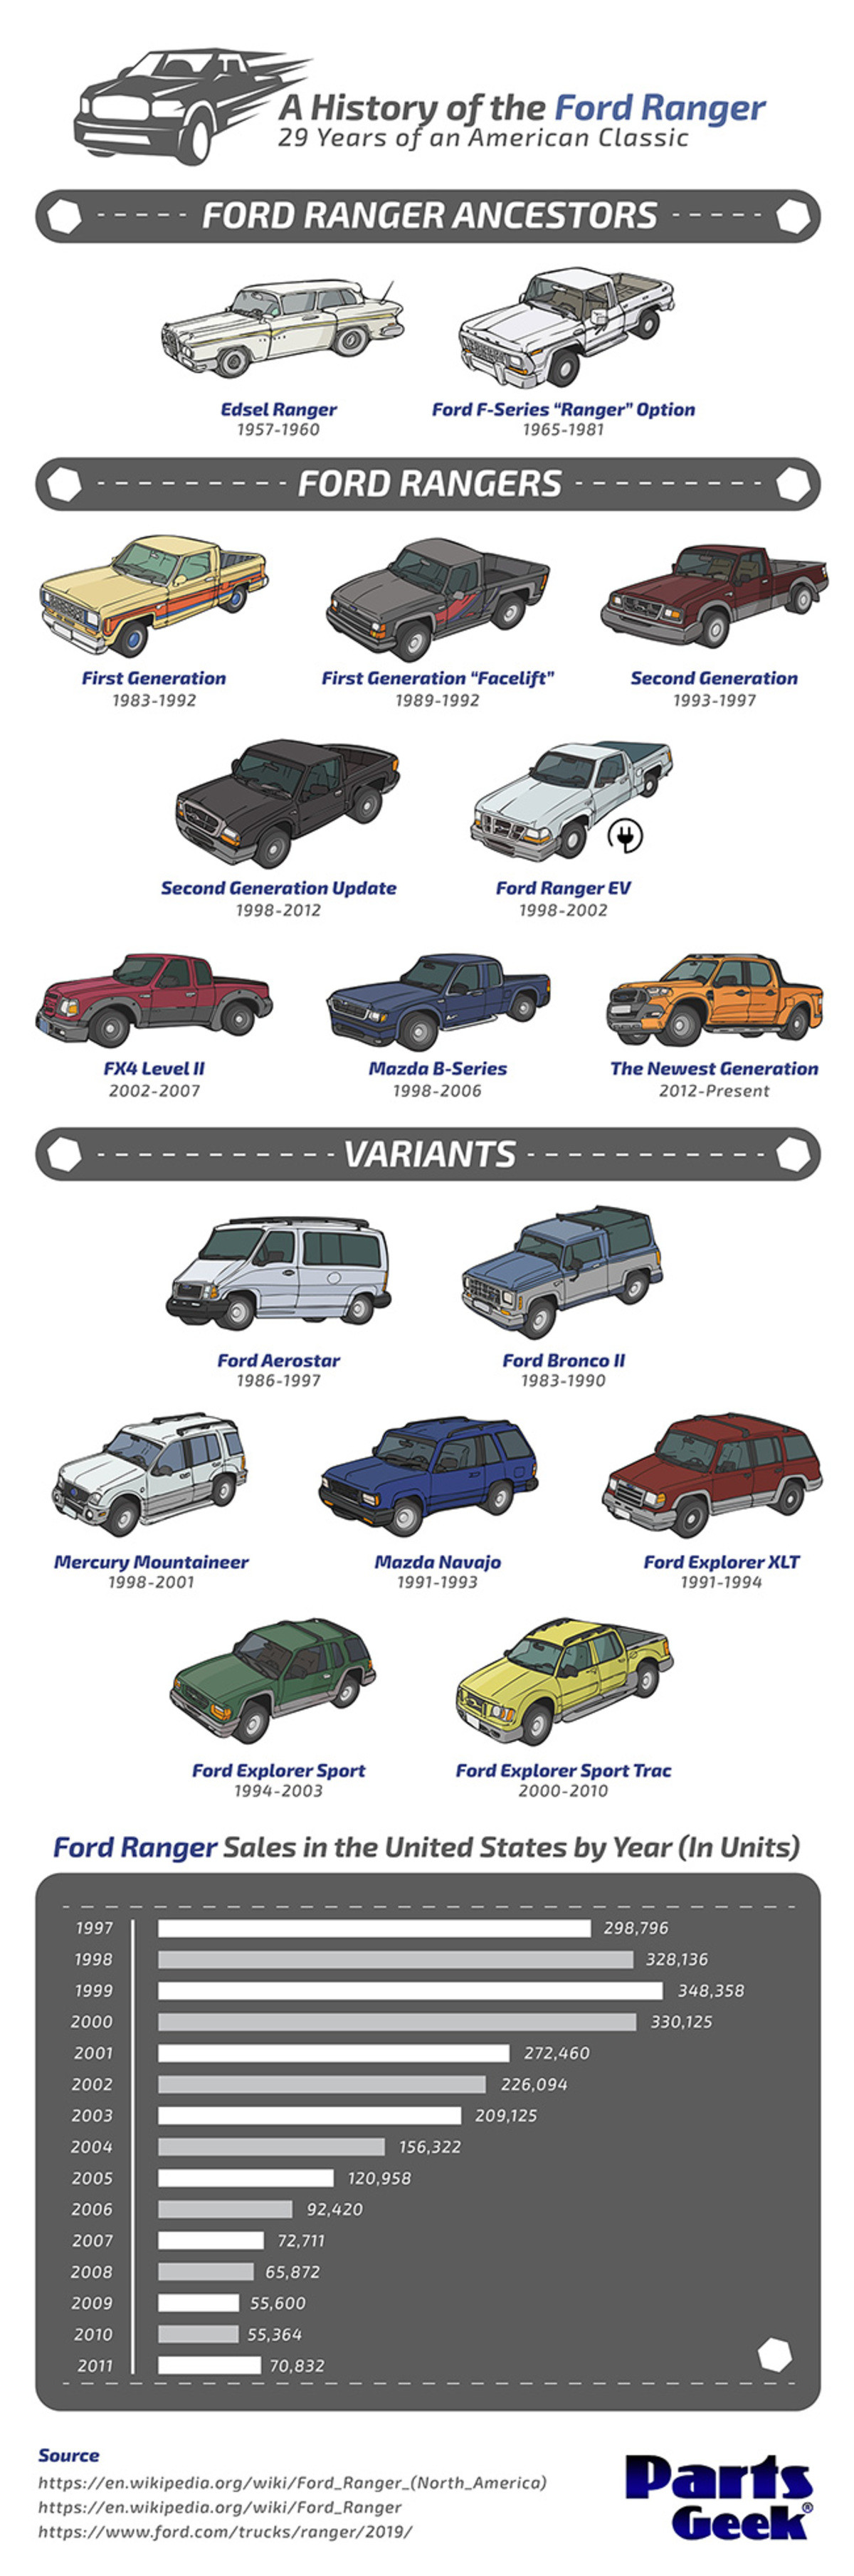 The History of the Ford Ranger. The Ford Ranger is the most badass little truck ever. There. I said it.. A Histo of the Ford Ranger 29 Years o an American Class